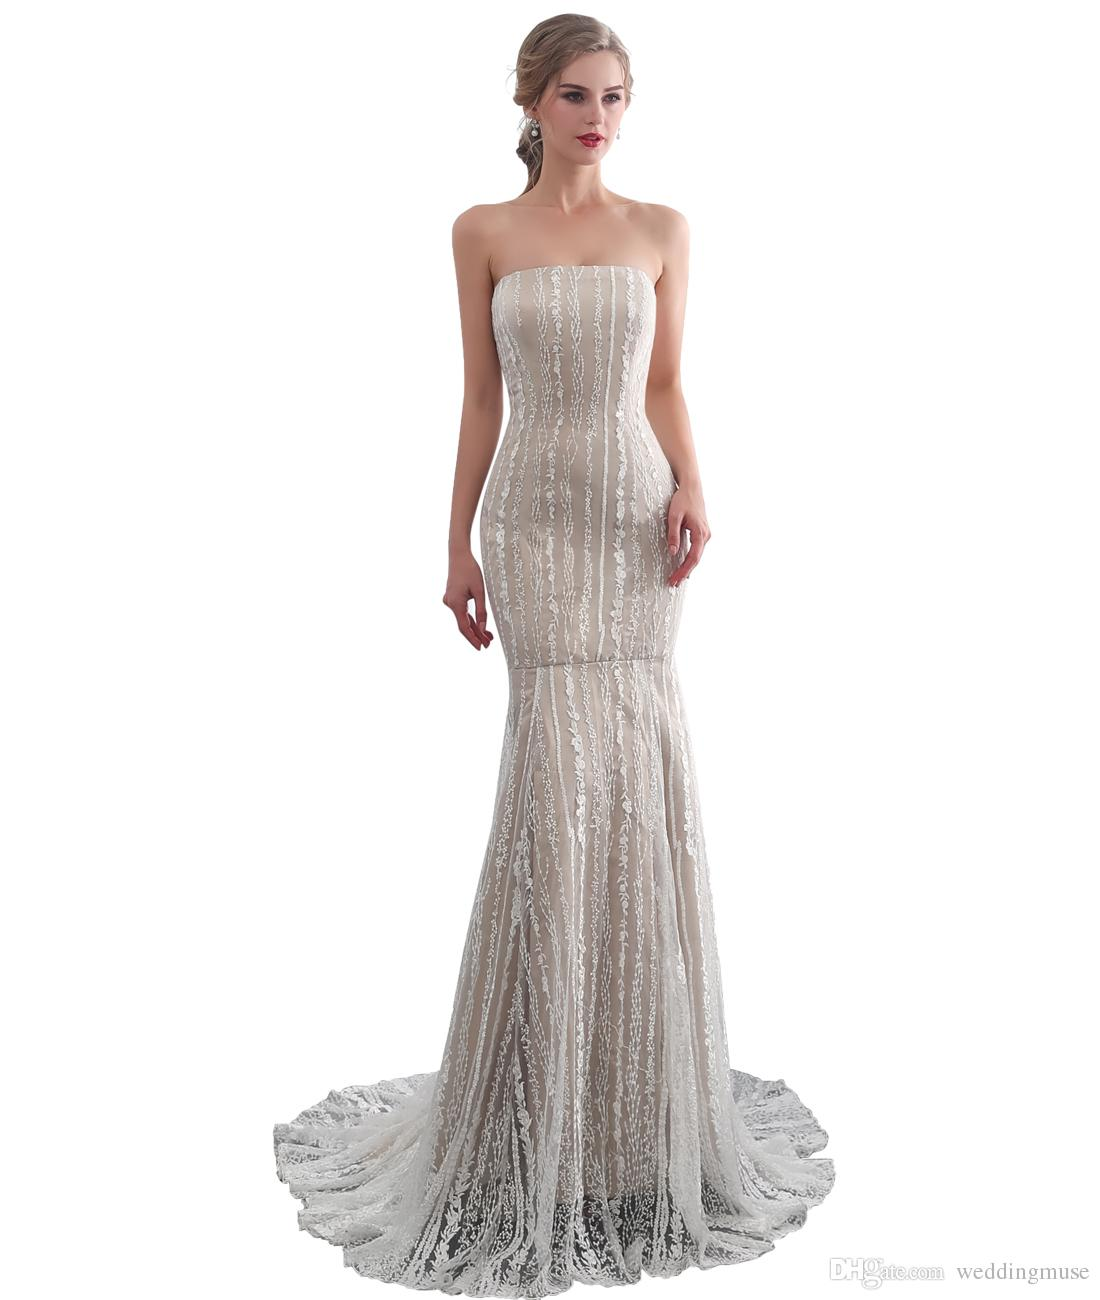 d5f002c9c613 Sexy Strapless Champagne Mermaid Wedding Dresses Appliques Lace Satin Lace  Up Back Sweep Train African Bridal Gowns Mermaids Wedding Dresses Strapless  ...